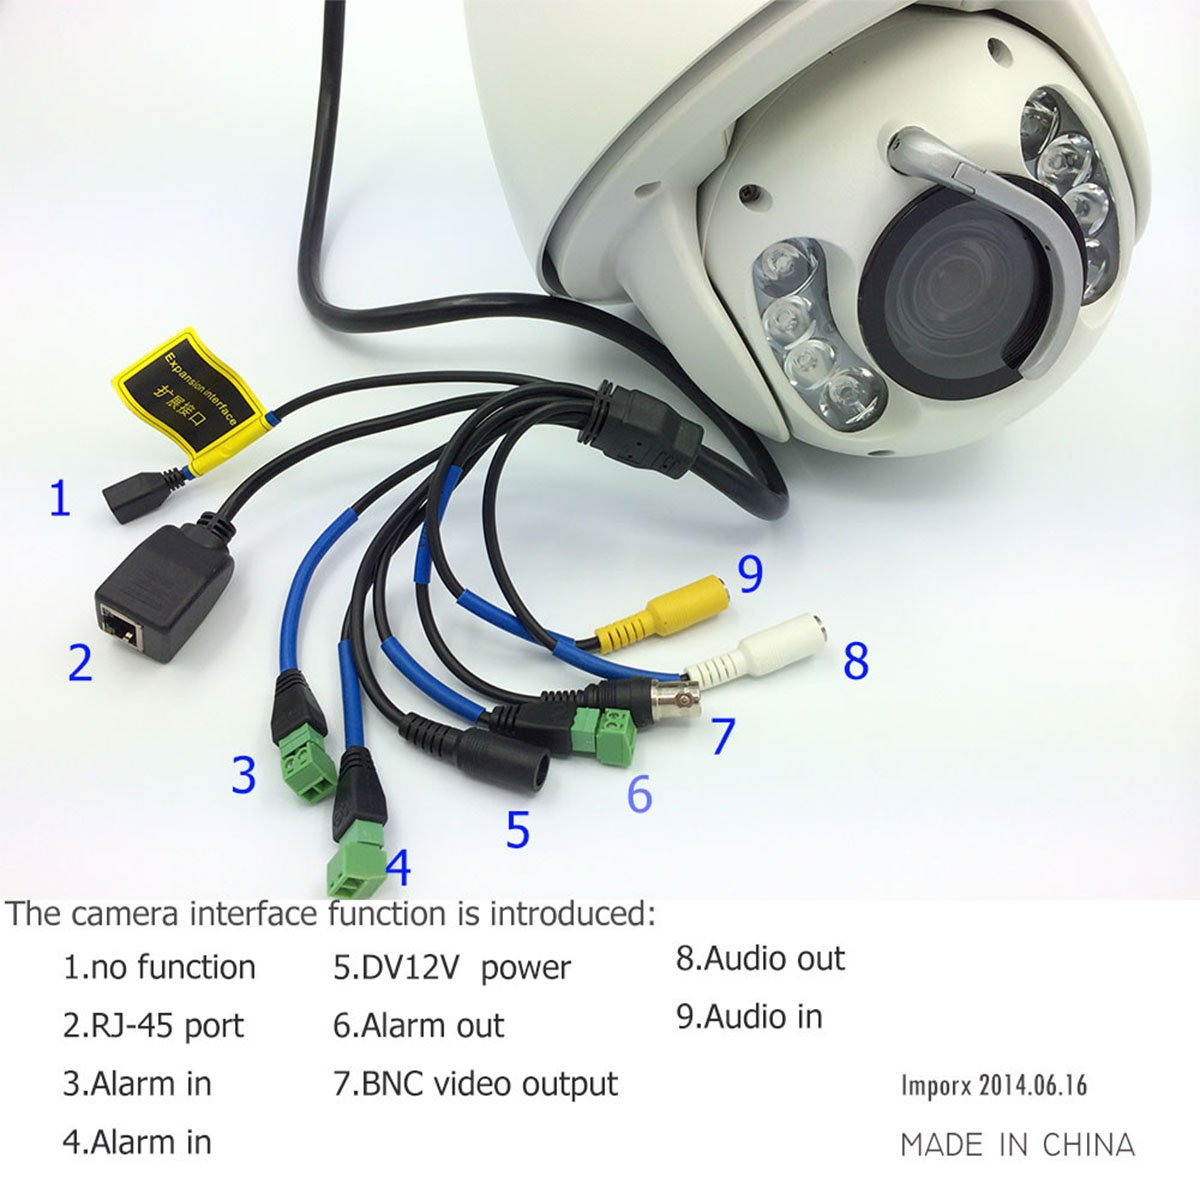 Amazon Com Imporx Cctv Auto Tracking Ptz Ip Camera 1080p Full Also With IP  Security Camera System Wiring Diagrams Moreover Amazon Com Imporx Cctv Auto  ...